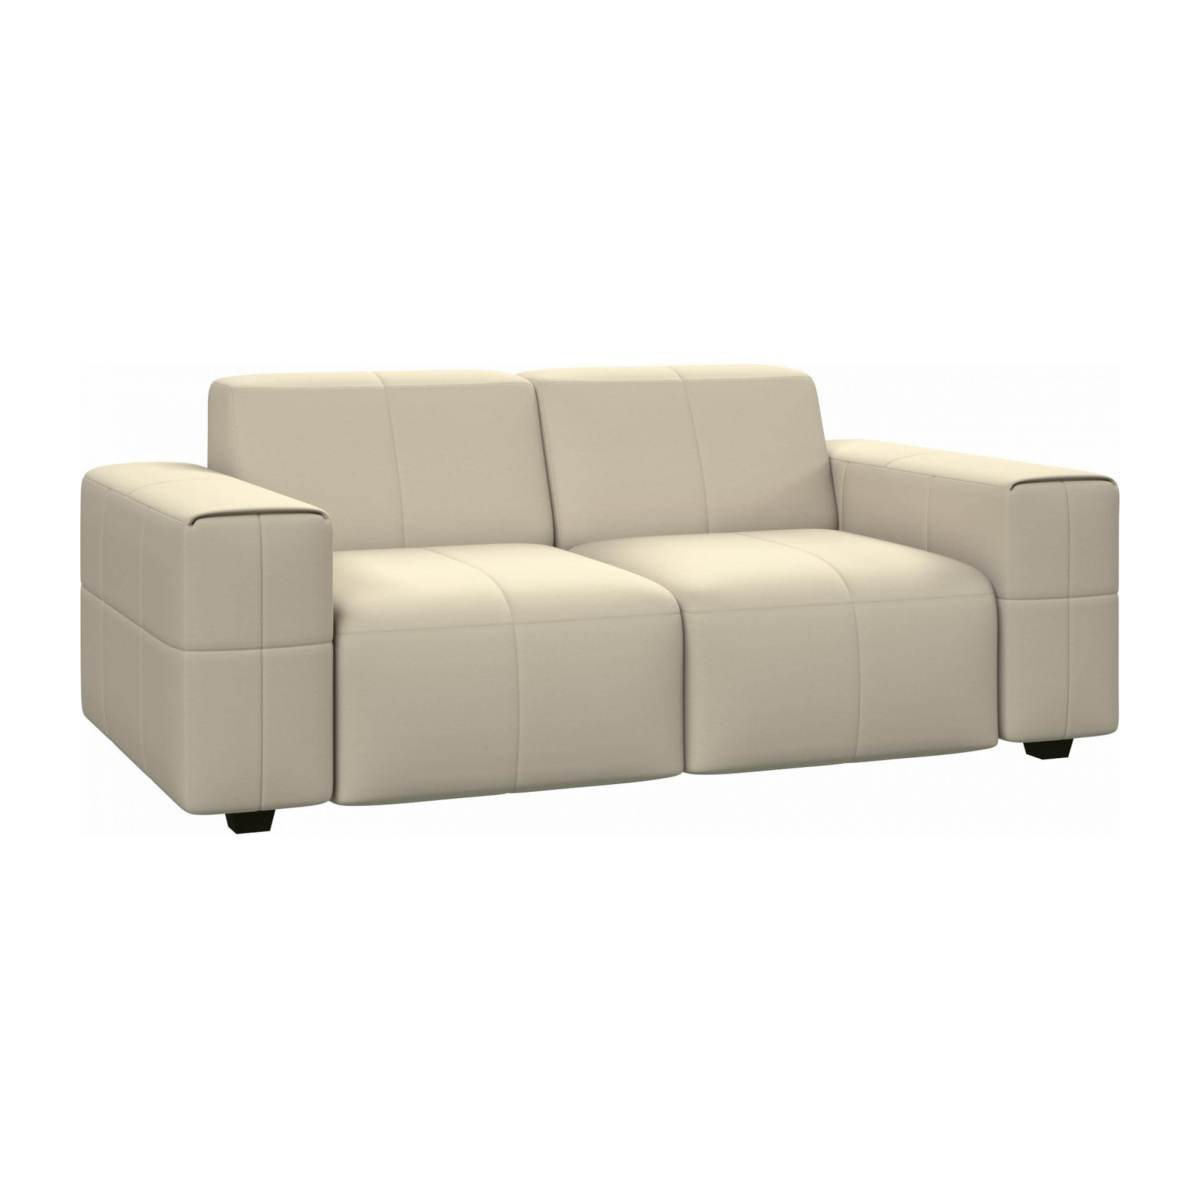 2 seater sofa in Eton veined leather, cream n°3